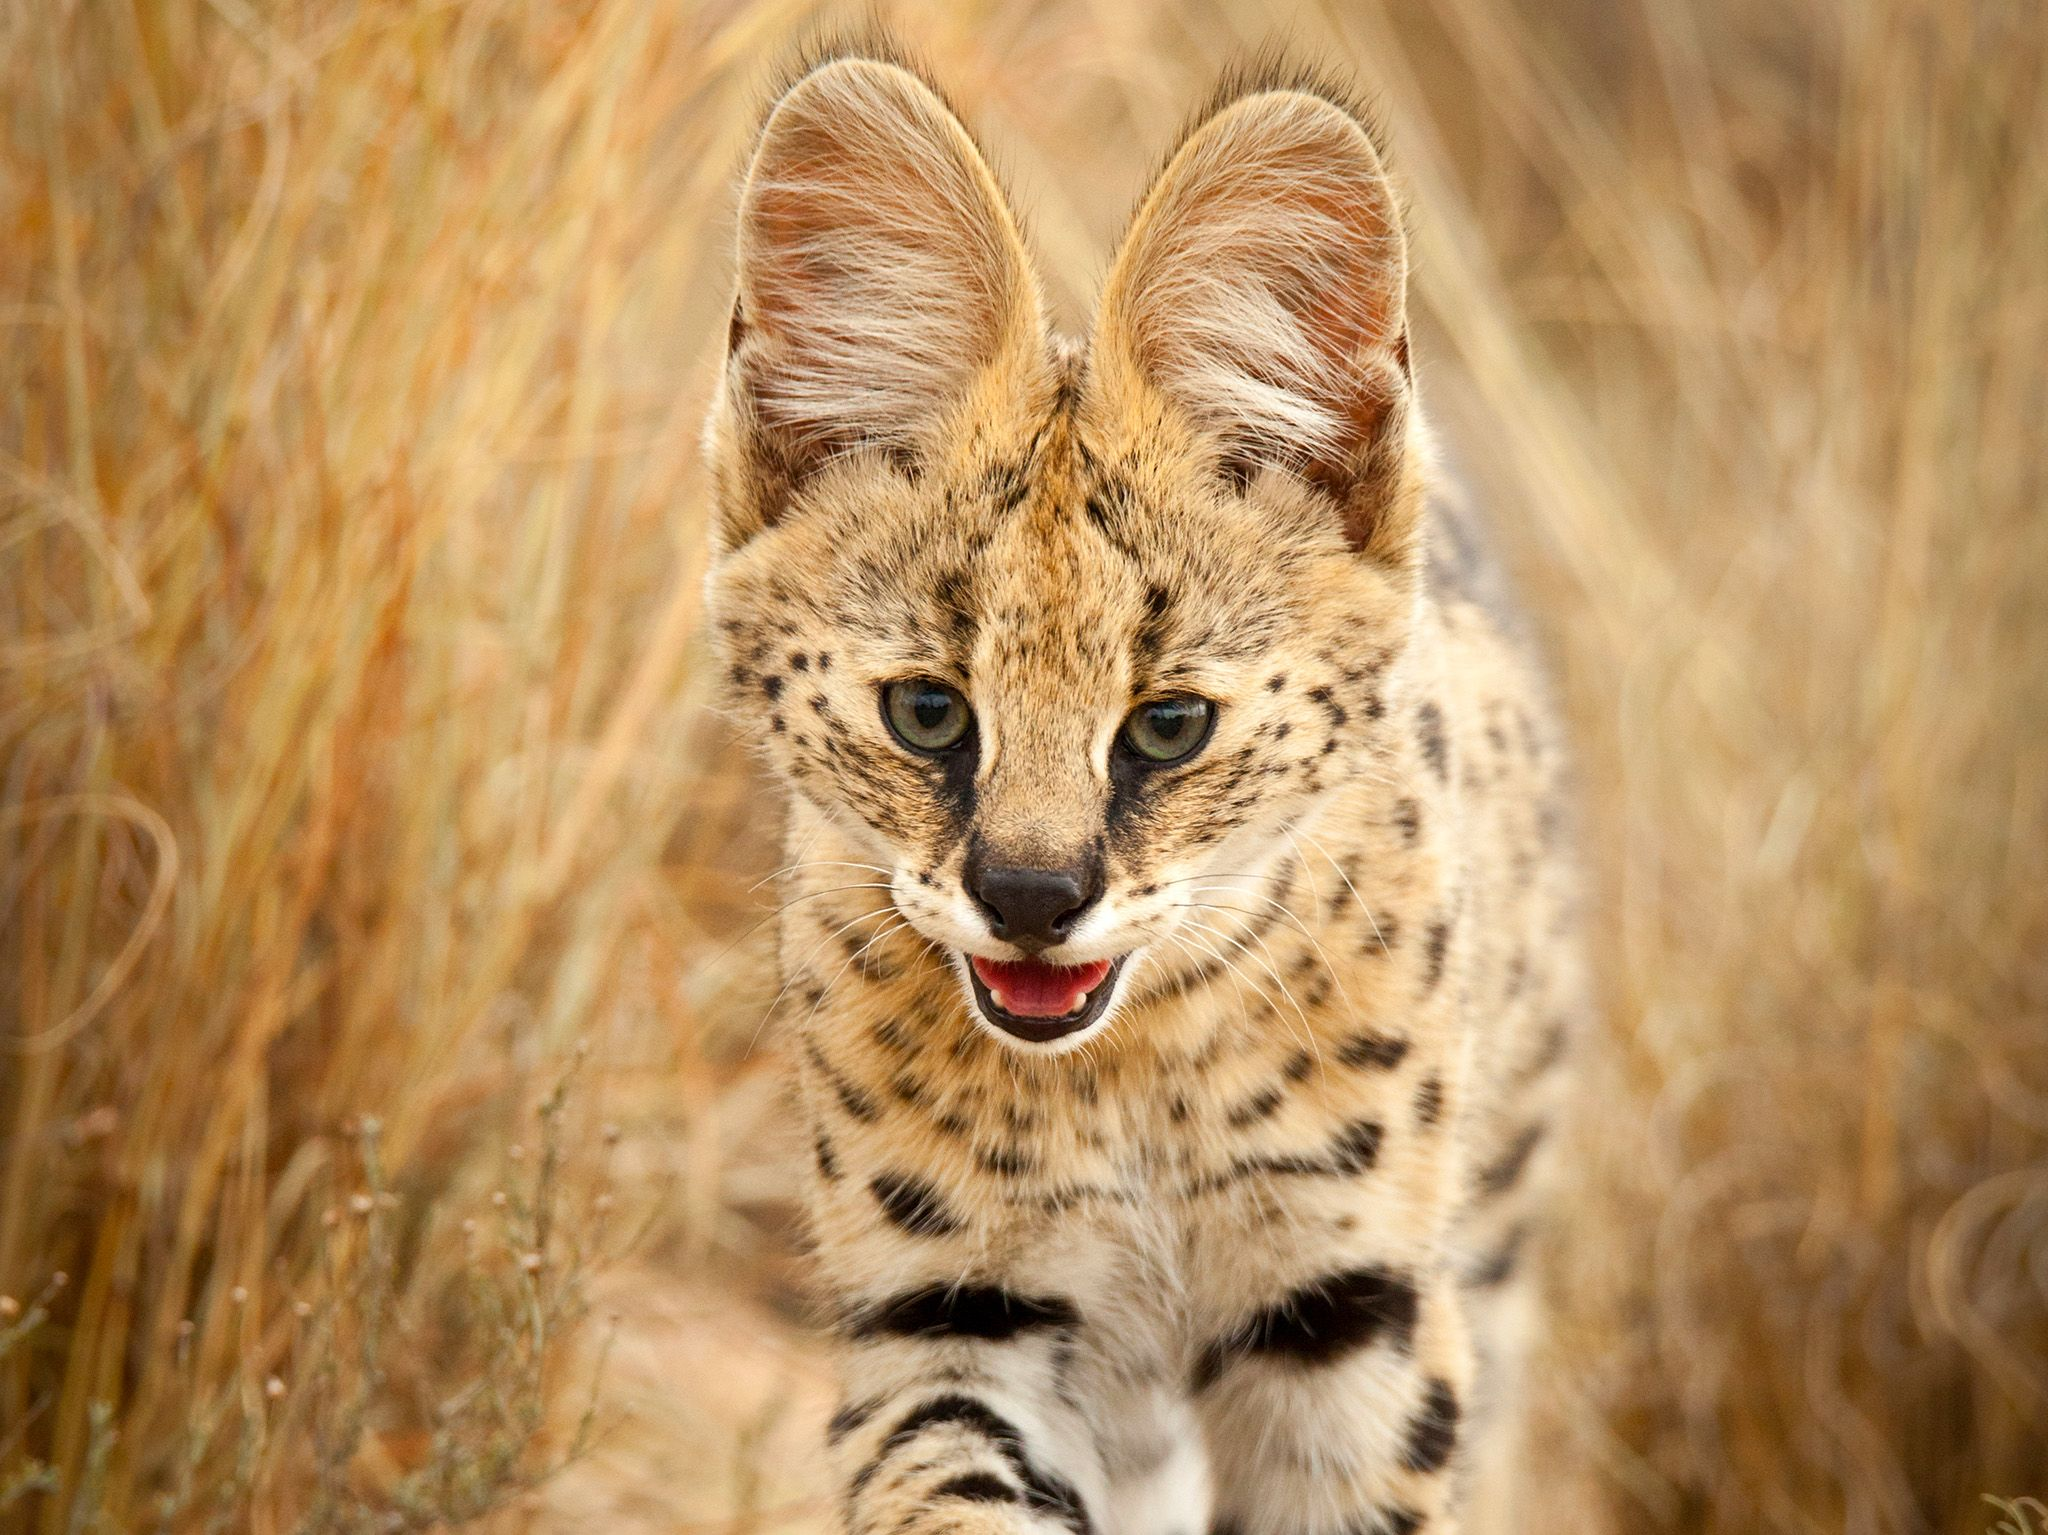 South Africa:  A serval walking through tall grass.  This image is from Wild Little Cats. [Photo of the day - March 2018]